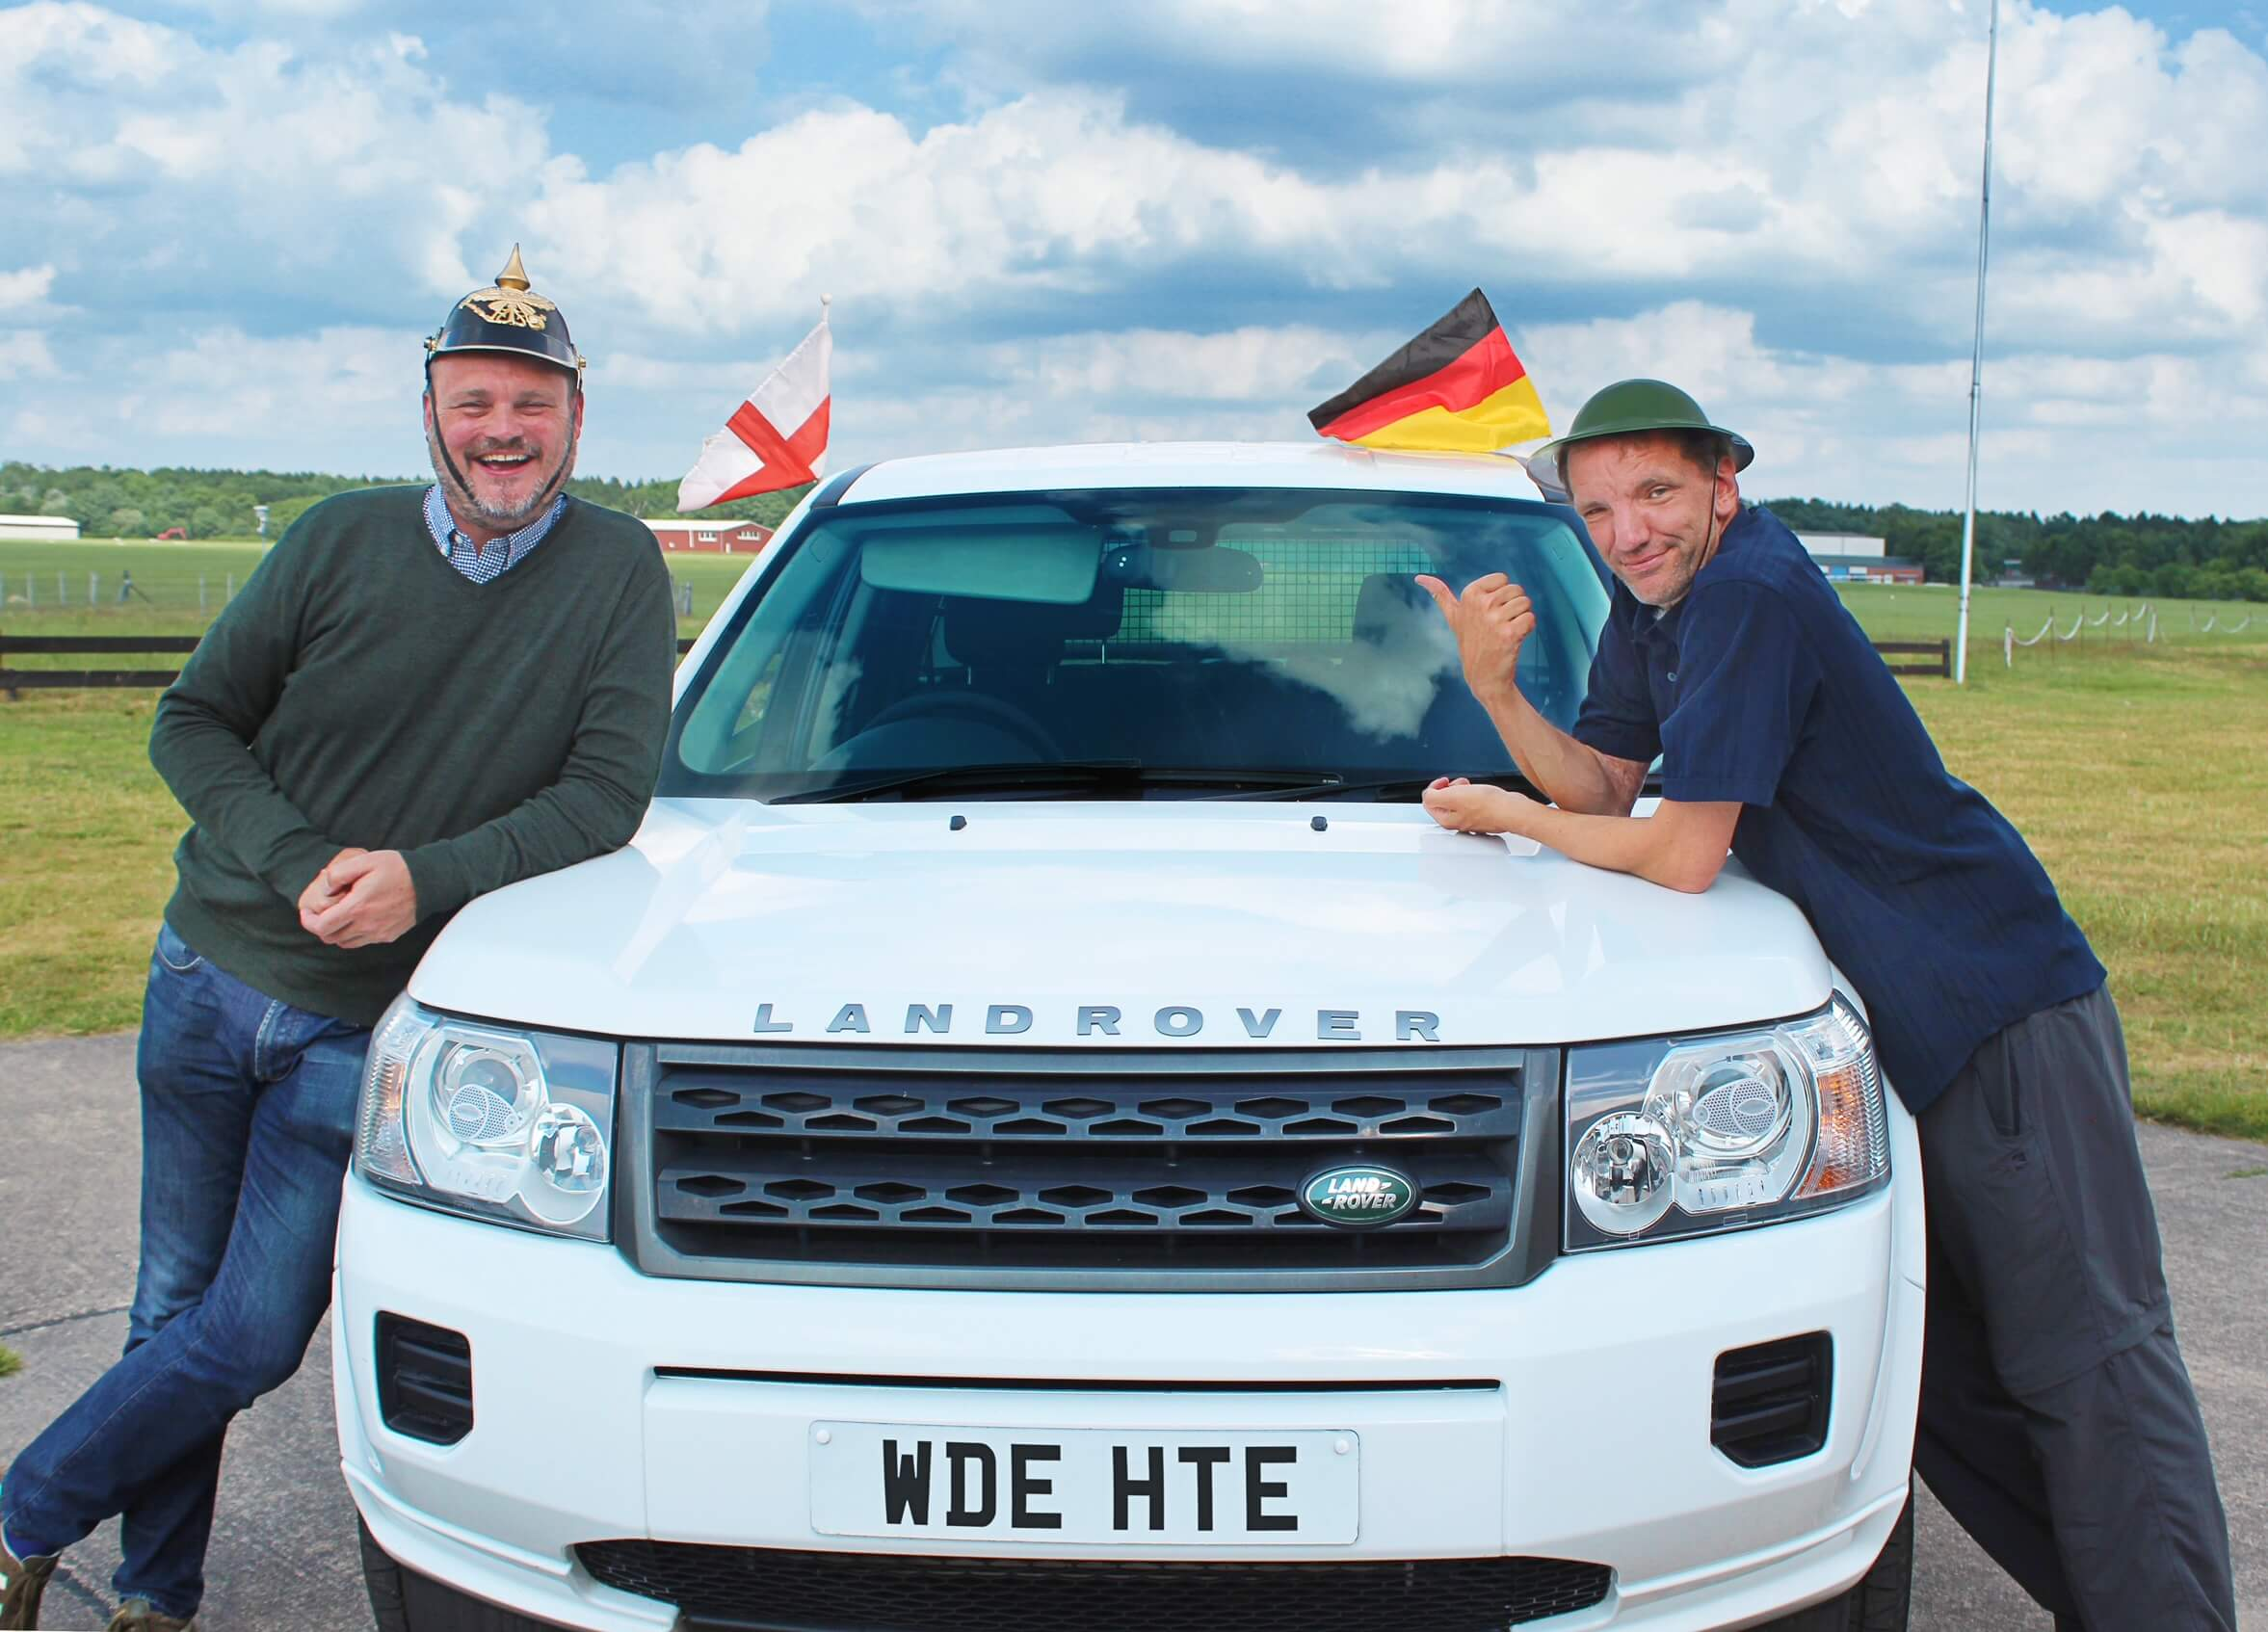 Al Murray and Henning Wehn in Germany